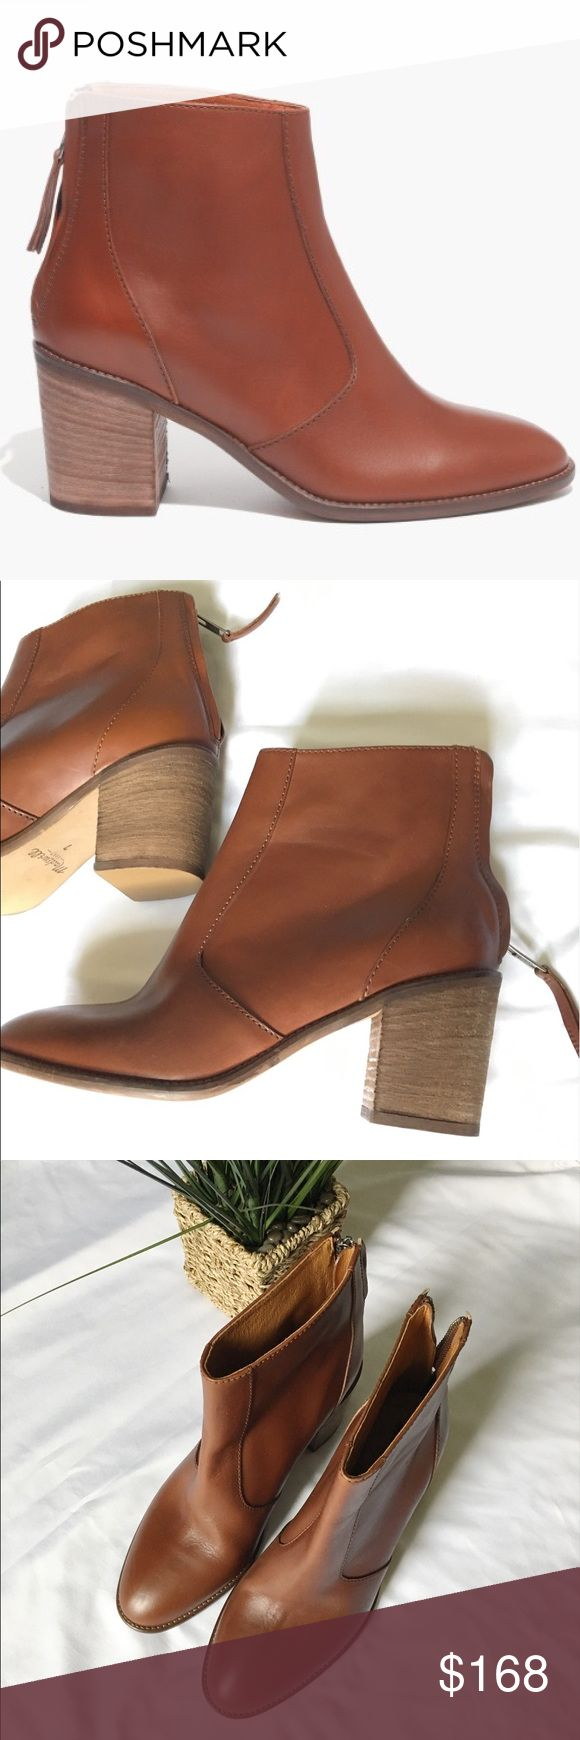 "Madewell Ames Boot Ankle Booties Tan Cognac Chunky stacked heel. Rich soft leather. Even better with age. Yes, this would be the ankle boot you're looking for.       Leather upper.     4 1/4"" shaft height (based off size 7).     10 1/2"" shaft circumference (based off size 7).     3"" heel.     Leather lining.     Man-made sole. Brand new without box. Minimal signs of wear from store try ons. Never worn. Retails $258 + tax. Brown/Cognac color. Note: style number written on bottom as this was a…"